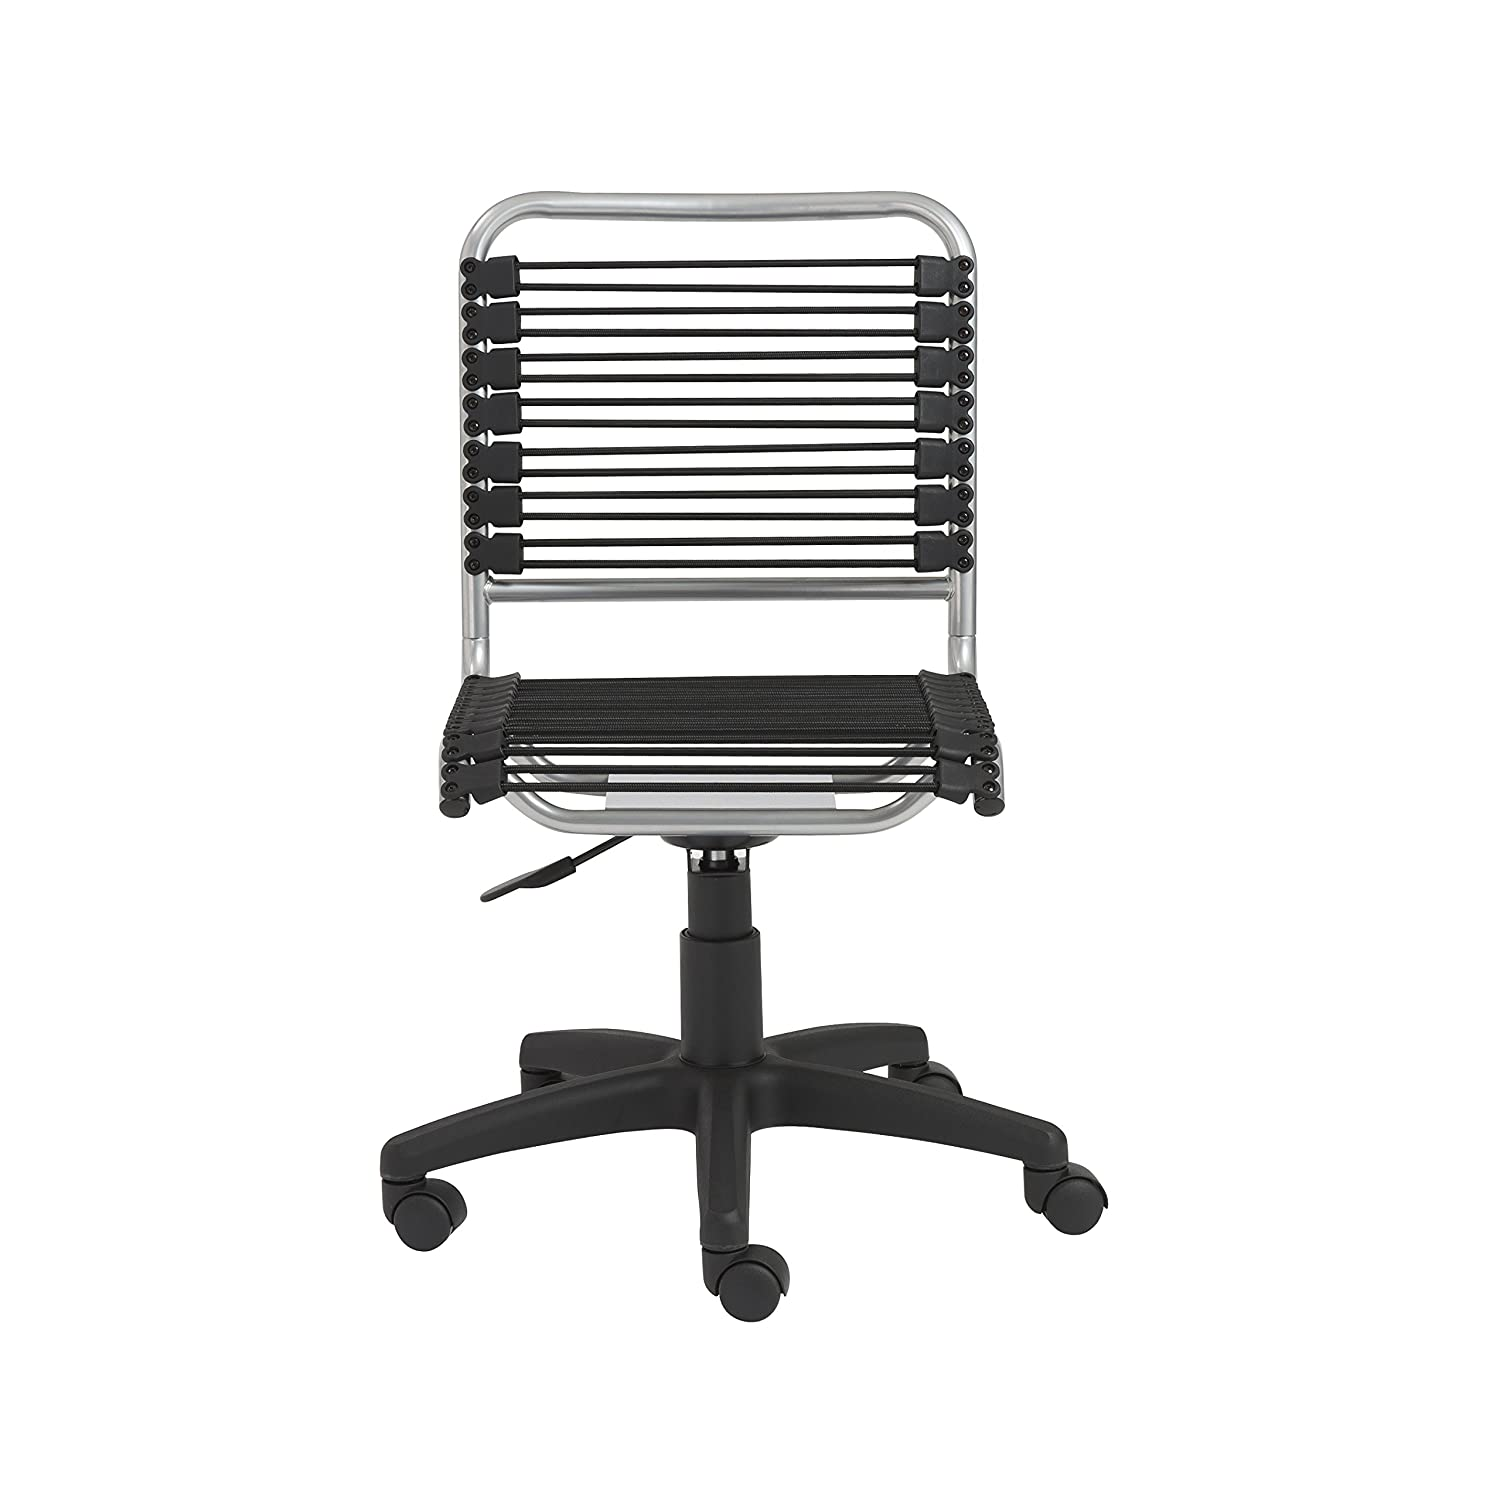 Euro Style Bungie Low Back Adjustable Office Chair, Black Bungies with Aluminum Frame